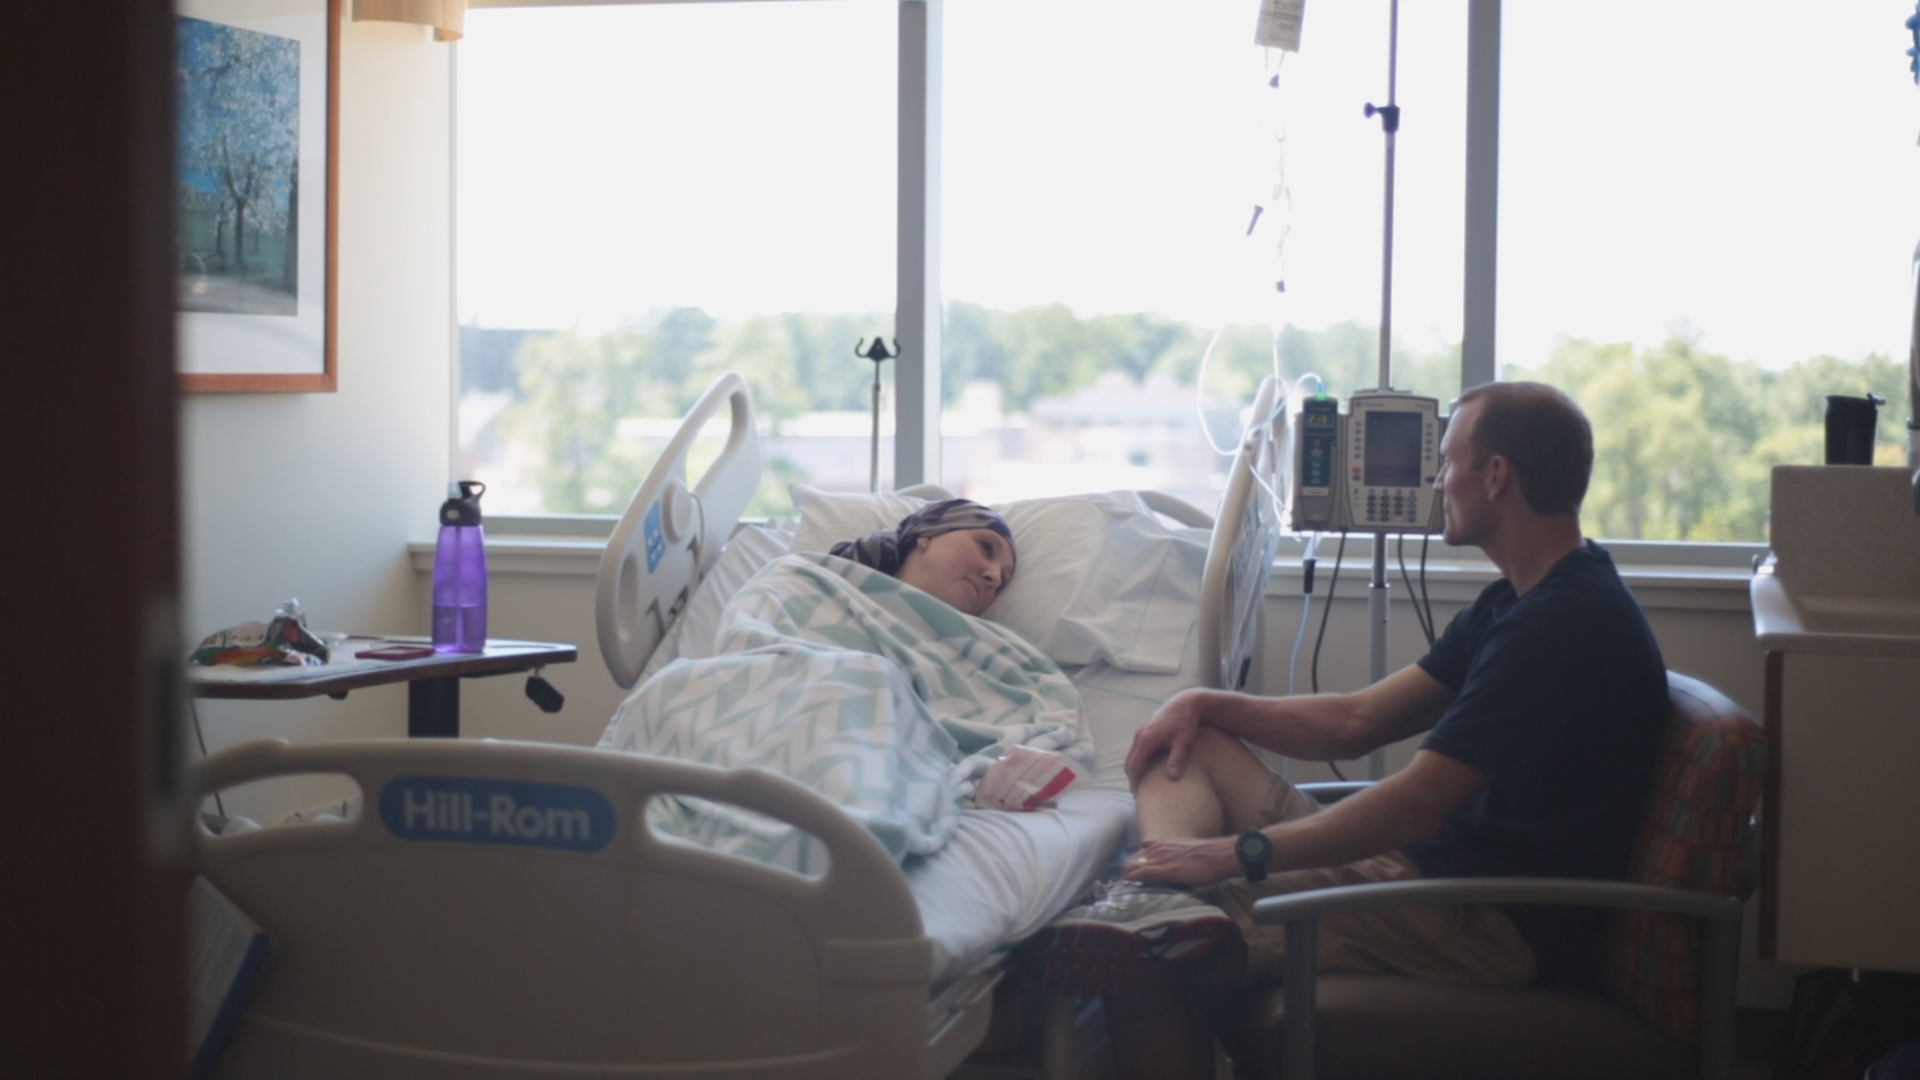 breast cancer patient Lori Elliott doing chemo at Duke Cancer Institute with husband